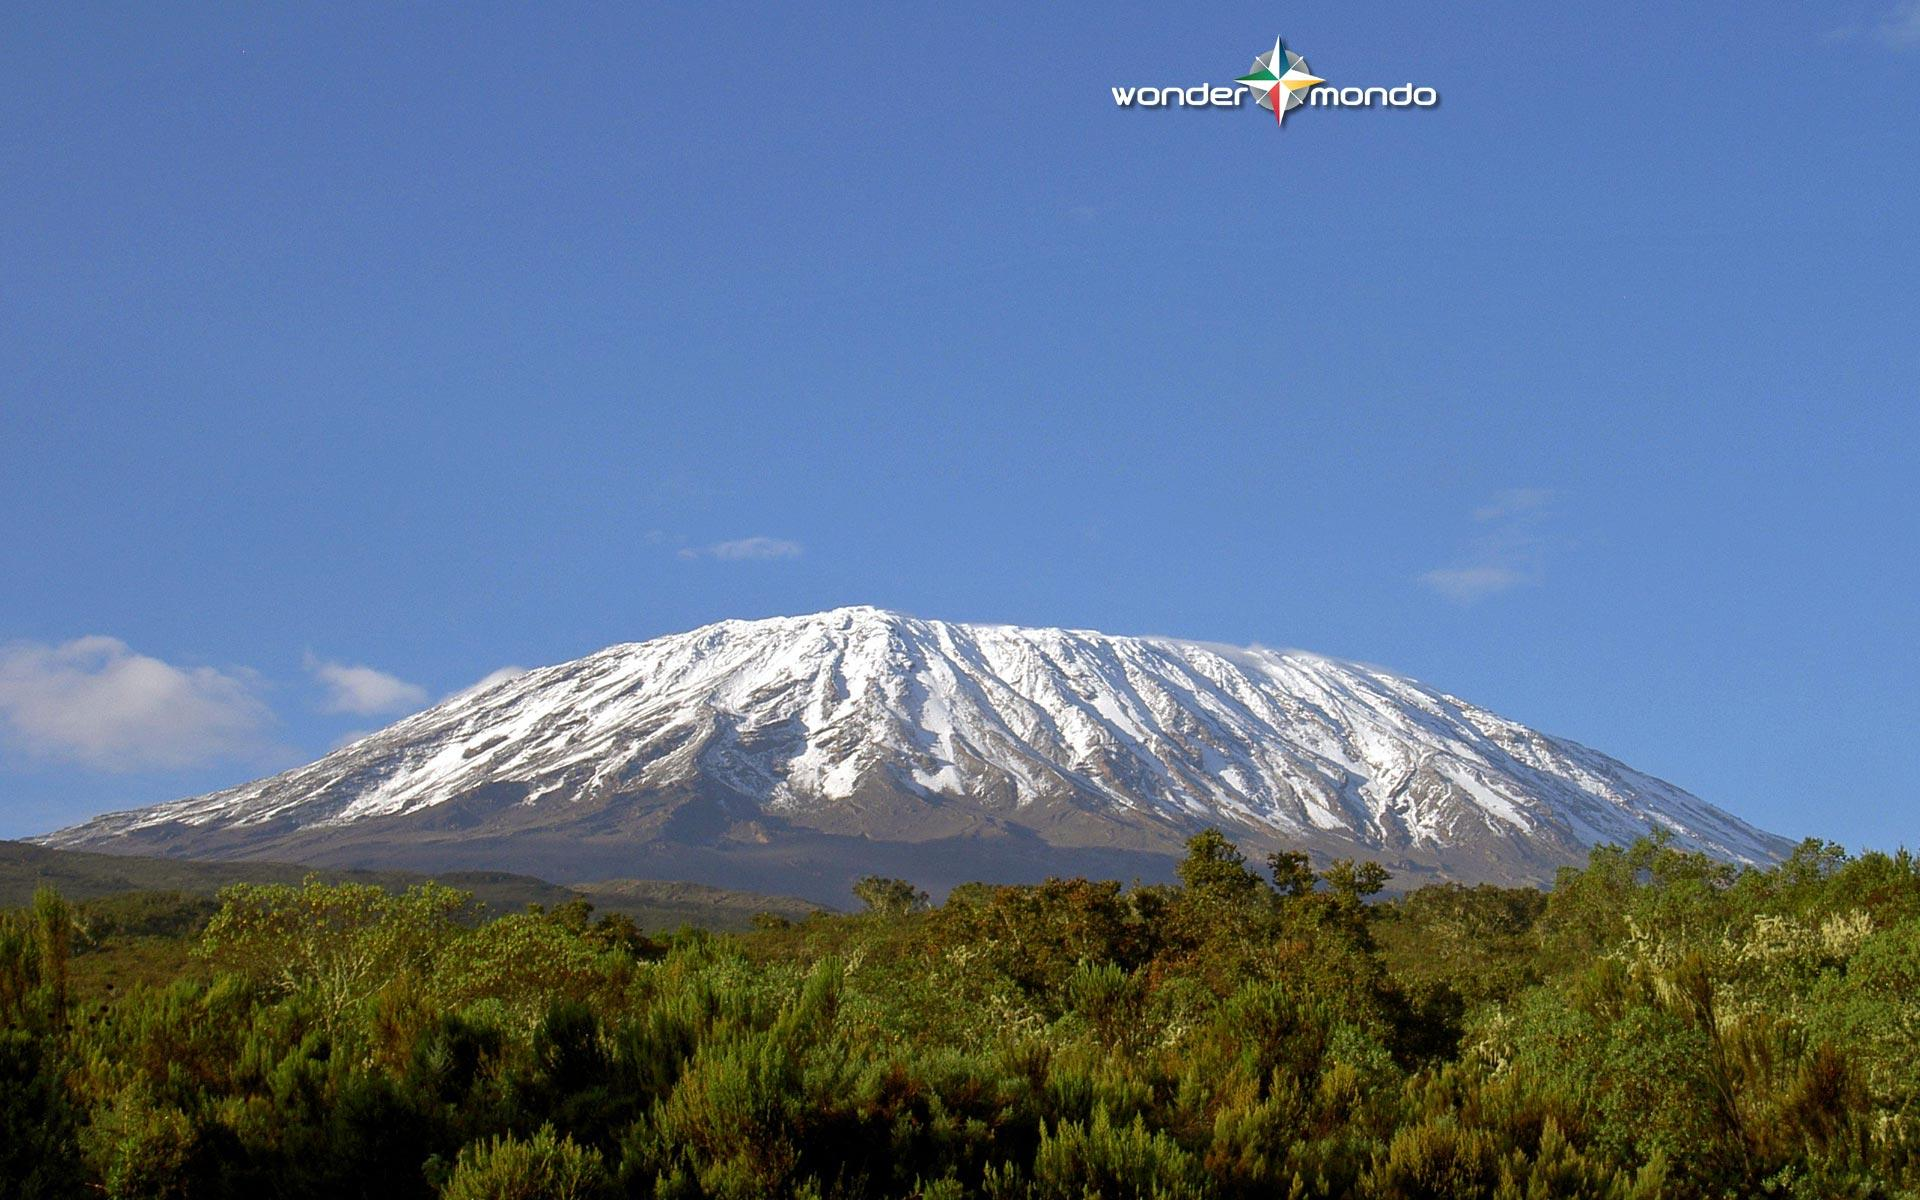 Wallpapers with Mount Kilimanjaro